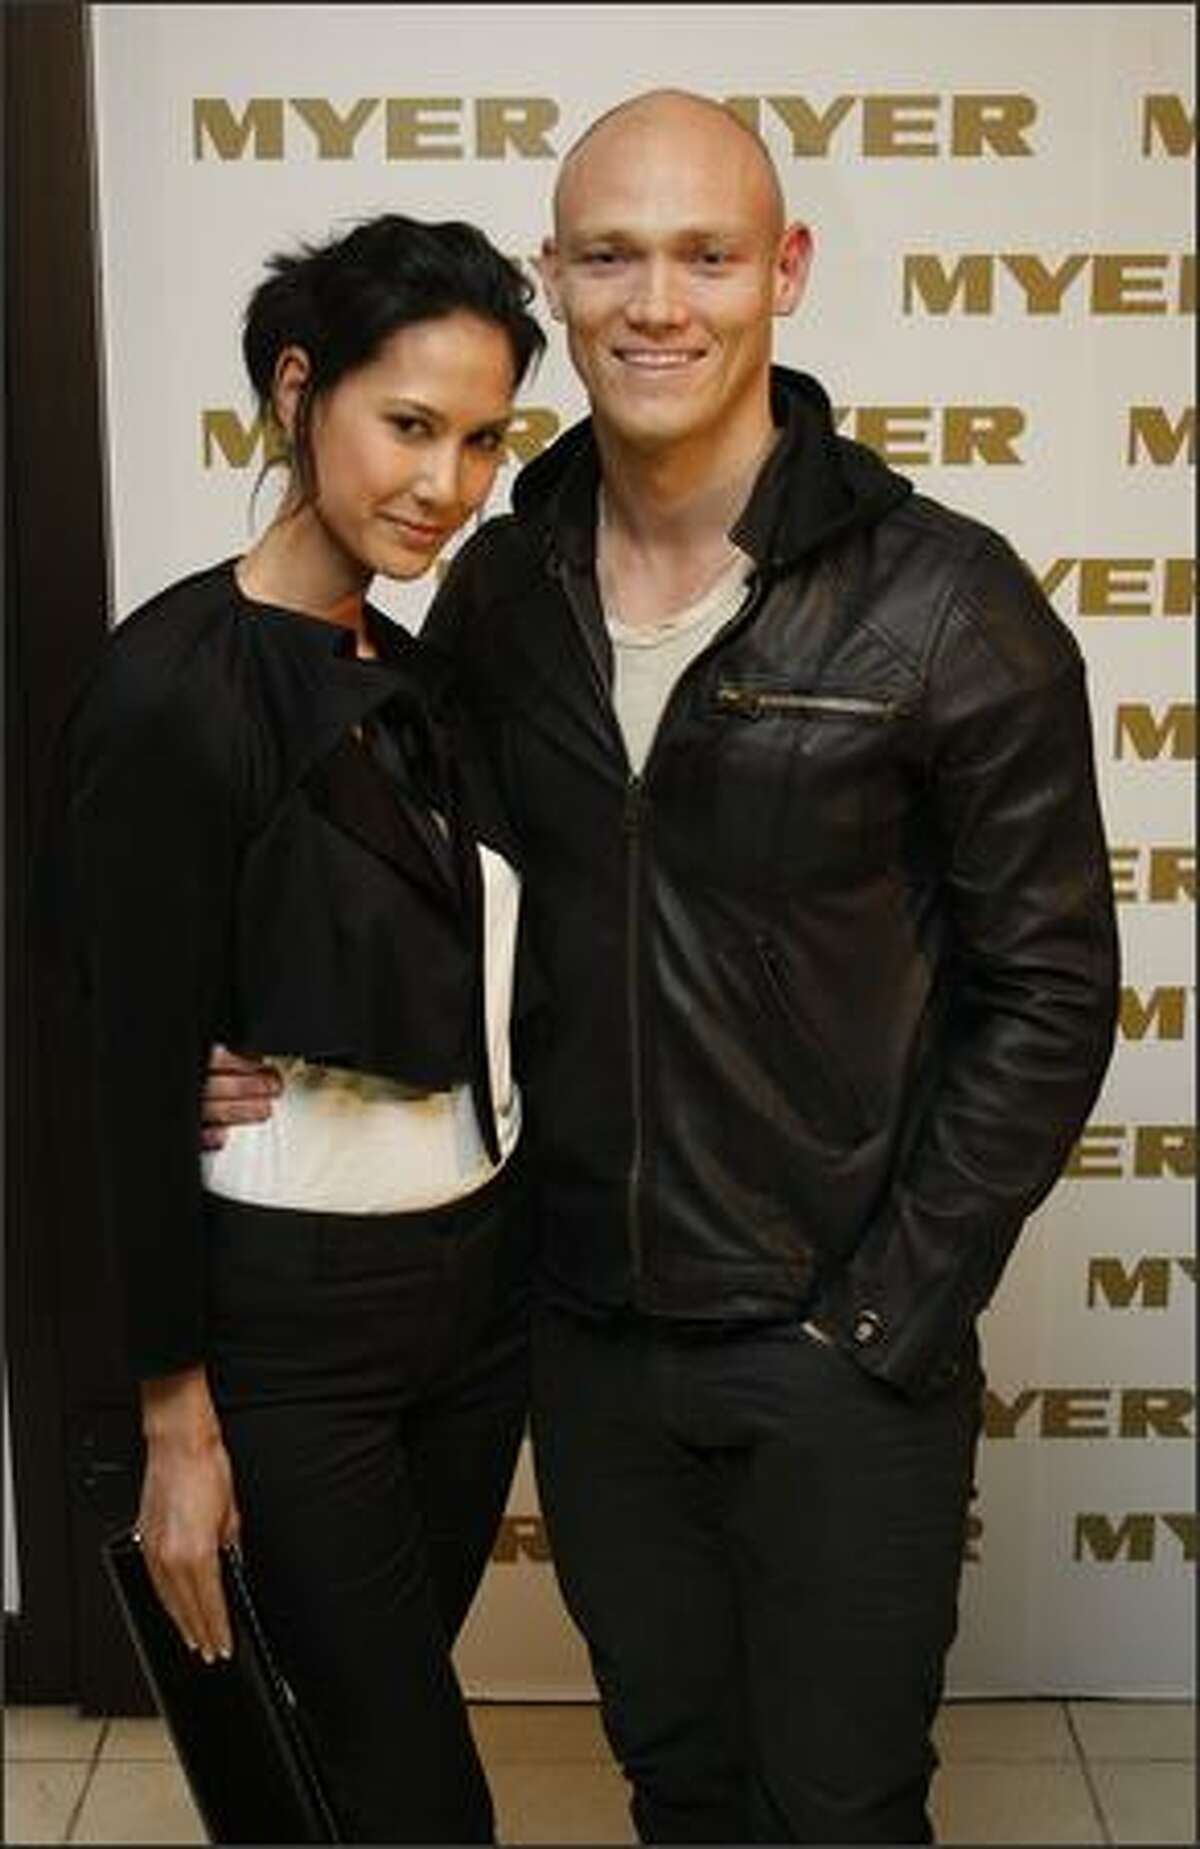 Michael Klim and wife Lindy Rama arrive for the official cocktail launch party for the Myer Spring Racing fashion range at the The Deck, Prince Hotel on Wednesday in Melbourne, Australia.